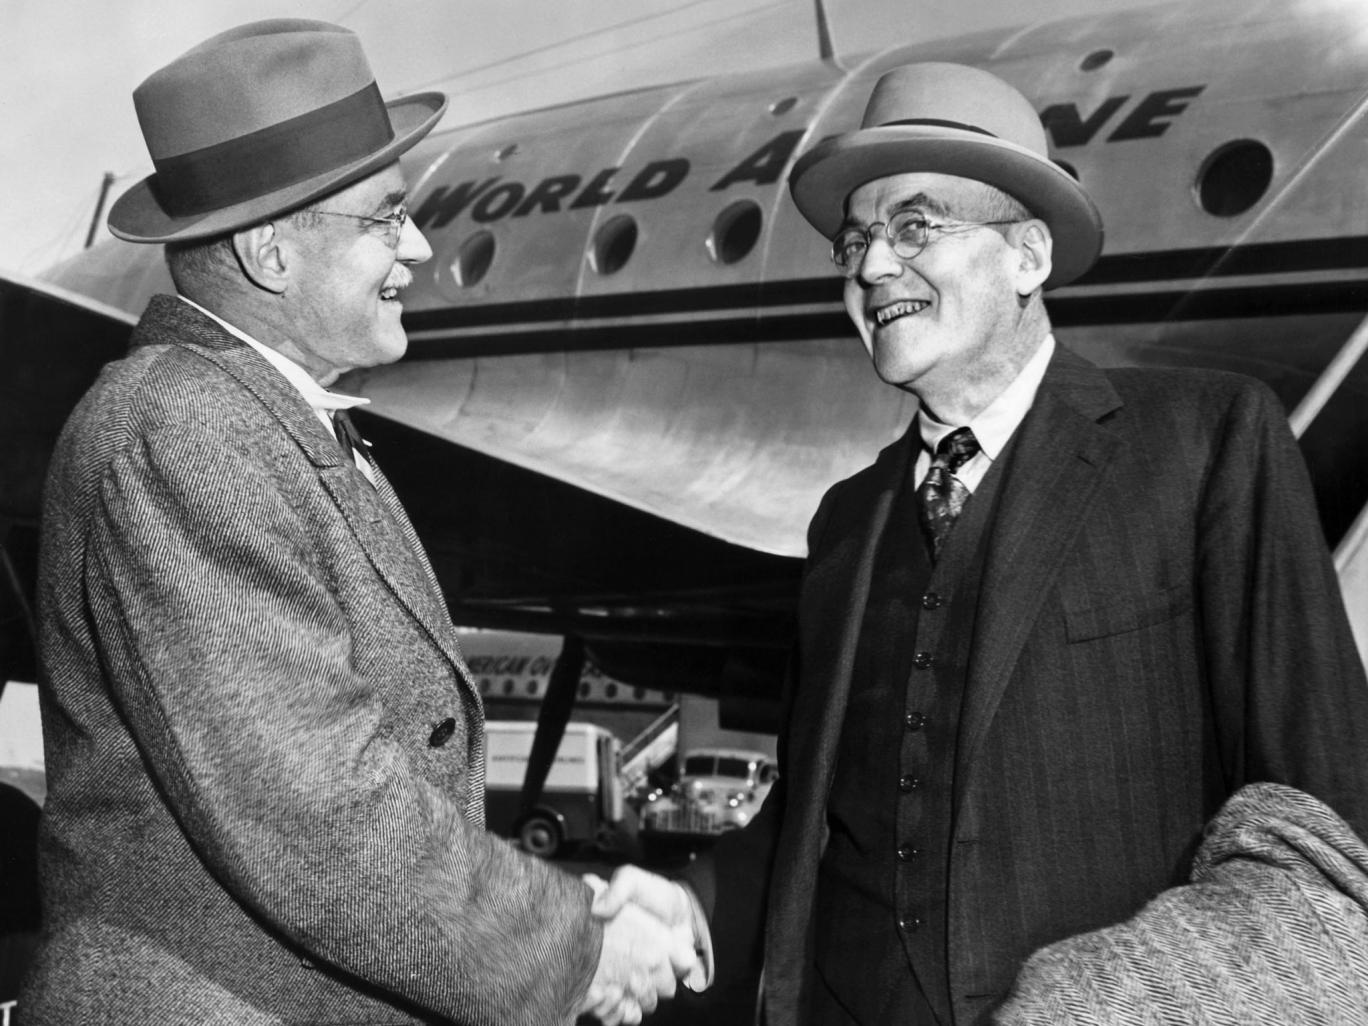 John Foster Dulles greets his brother Alan at the airport